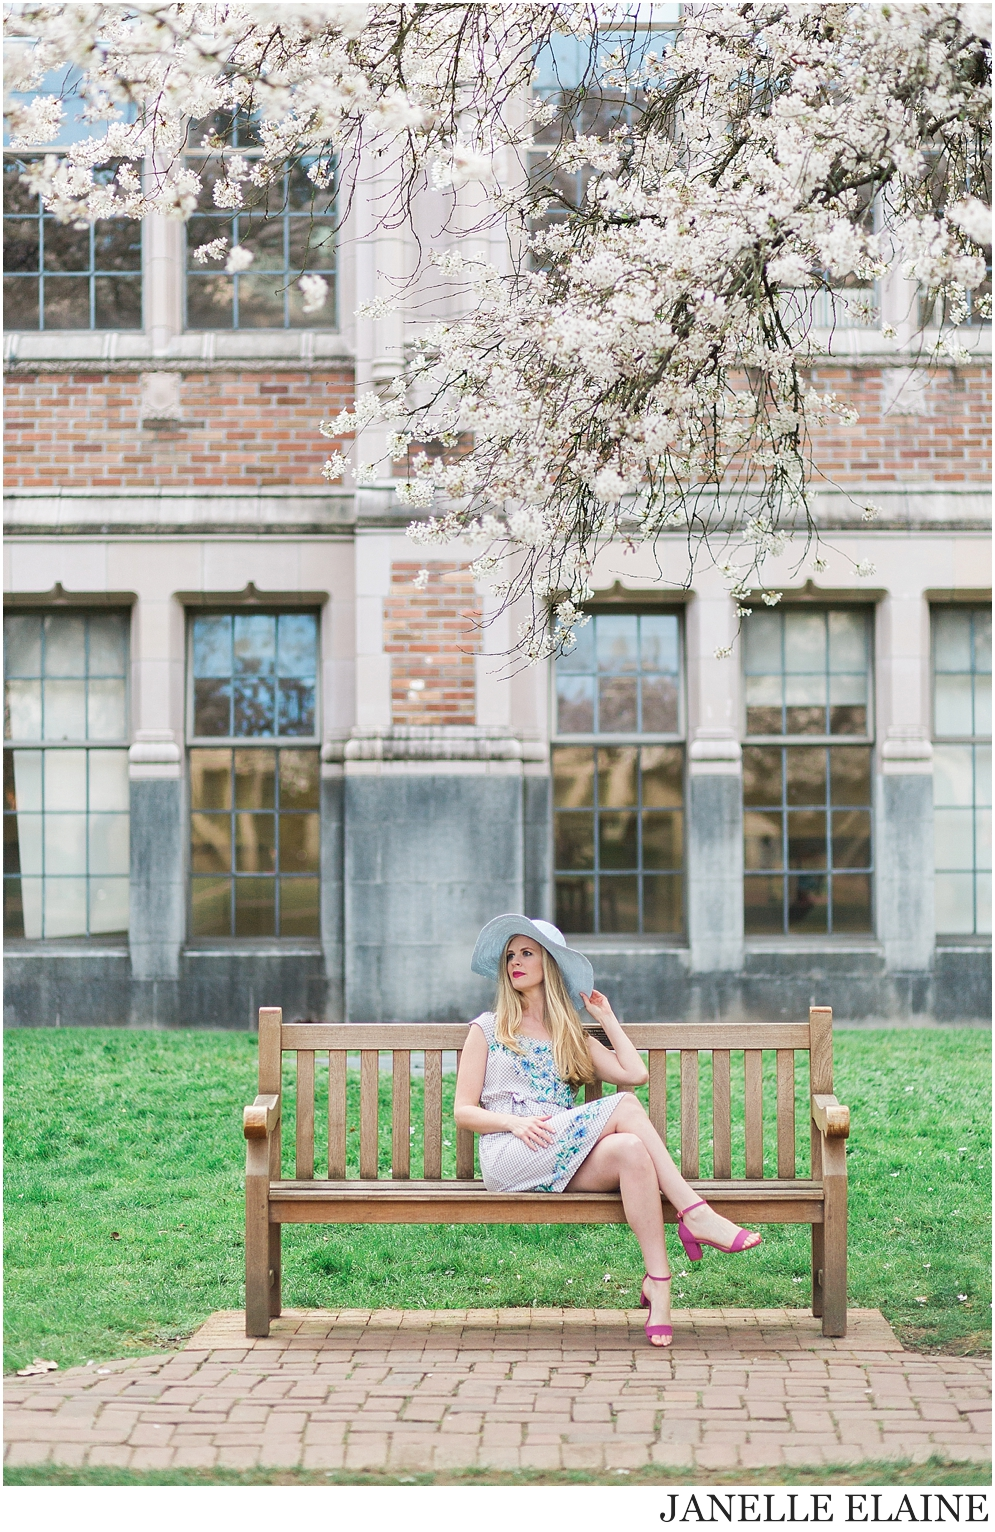 brooke-spring photo session-uw-seattle portrait photographer janelle elaine photography-63.jpg